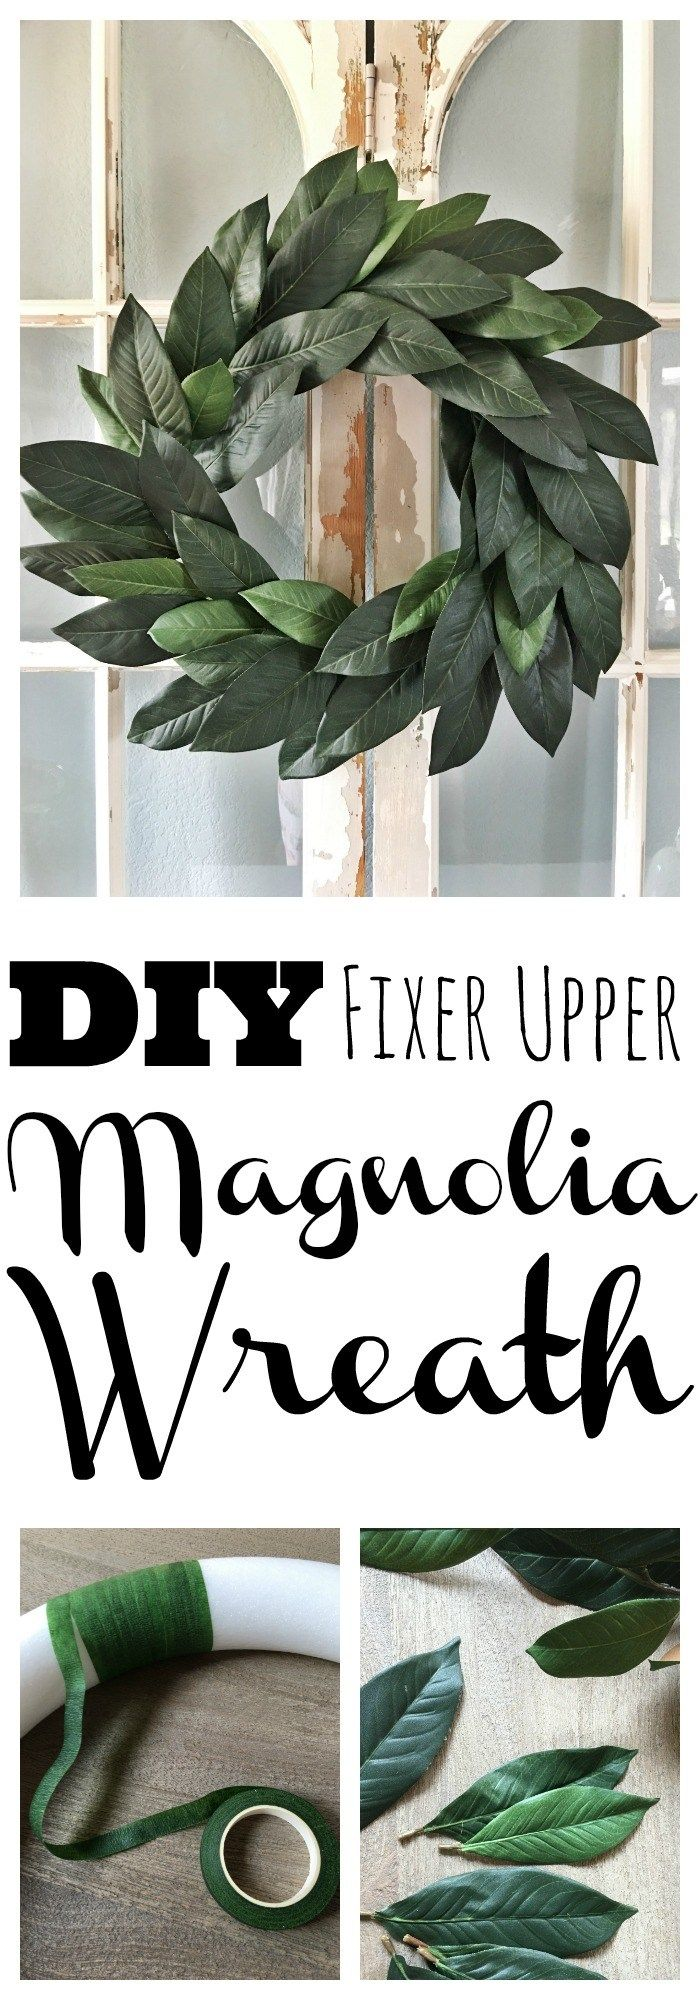 DIY Fixer Upper Magnolia Wreath